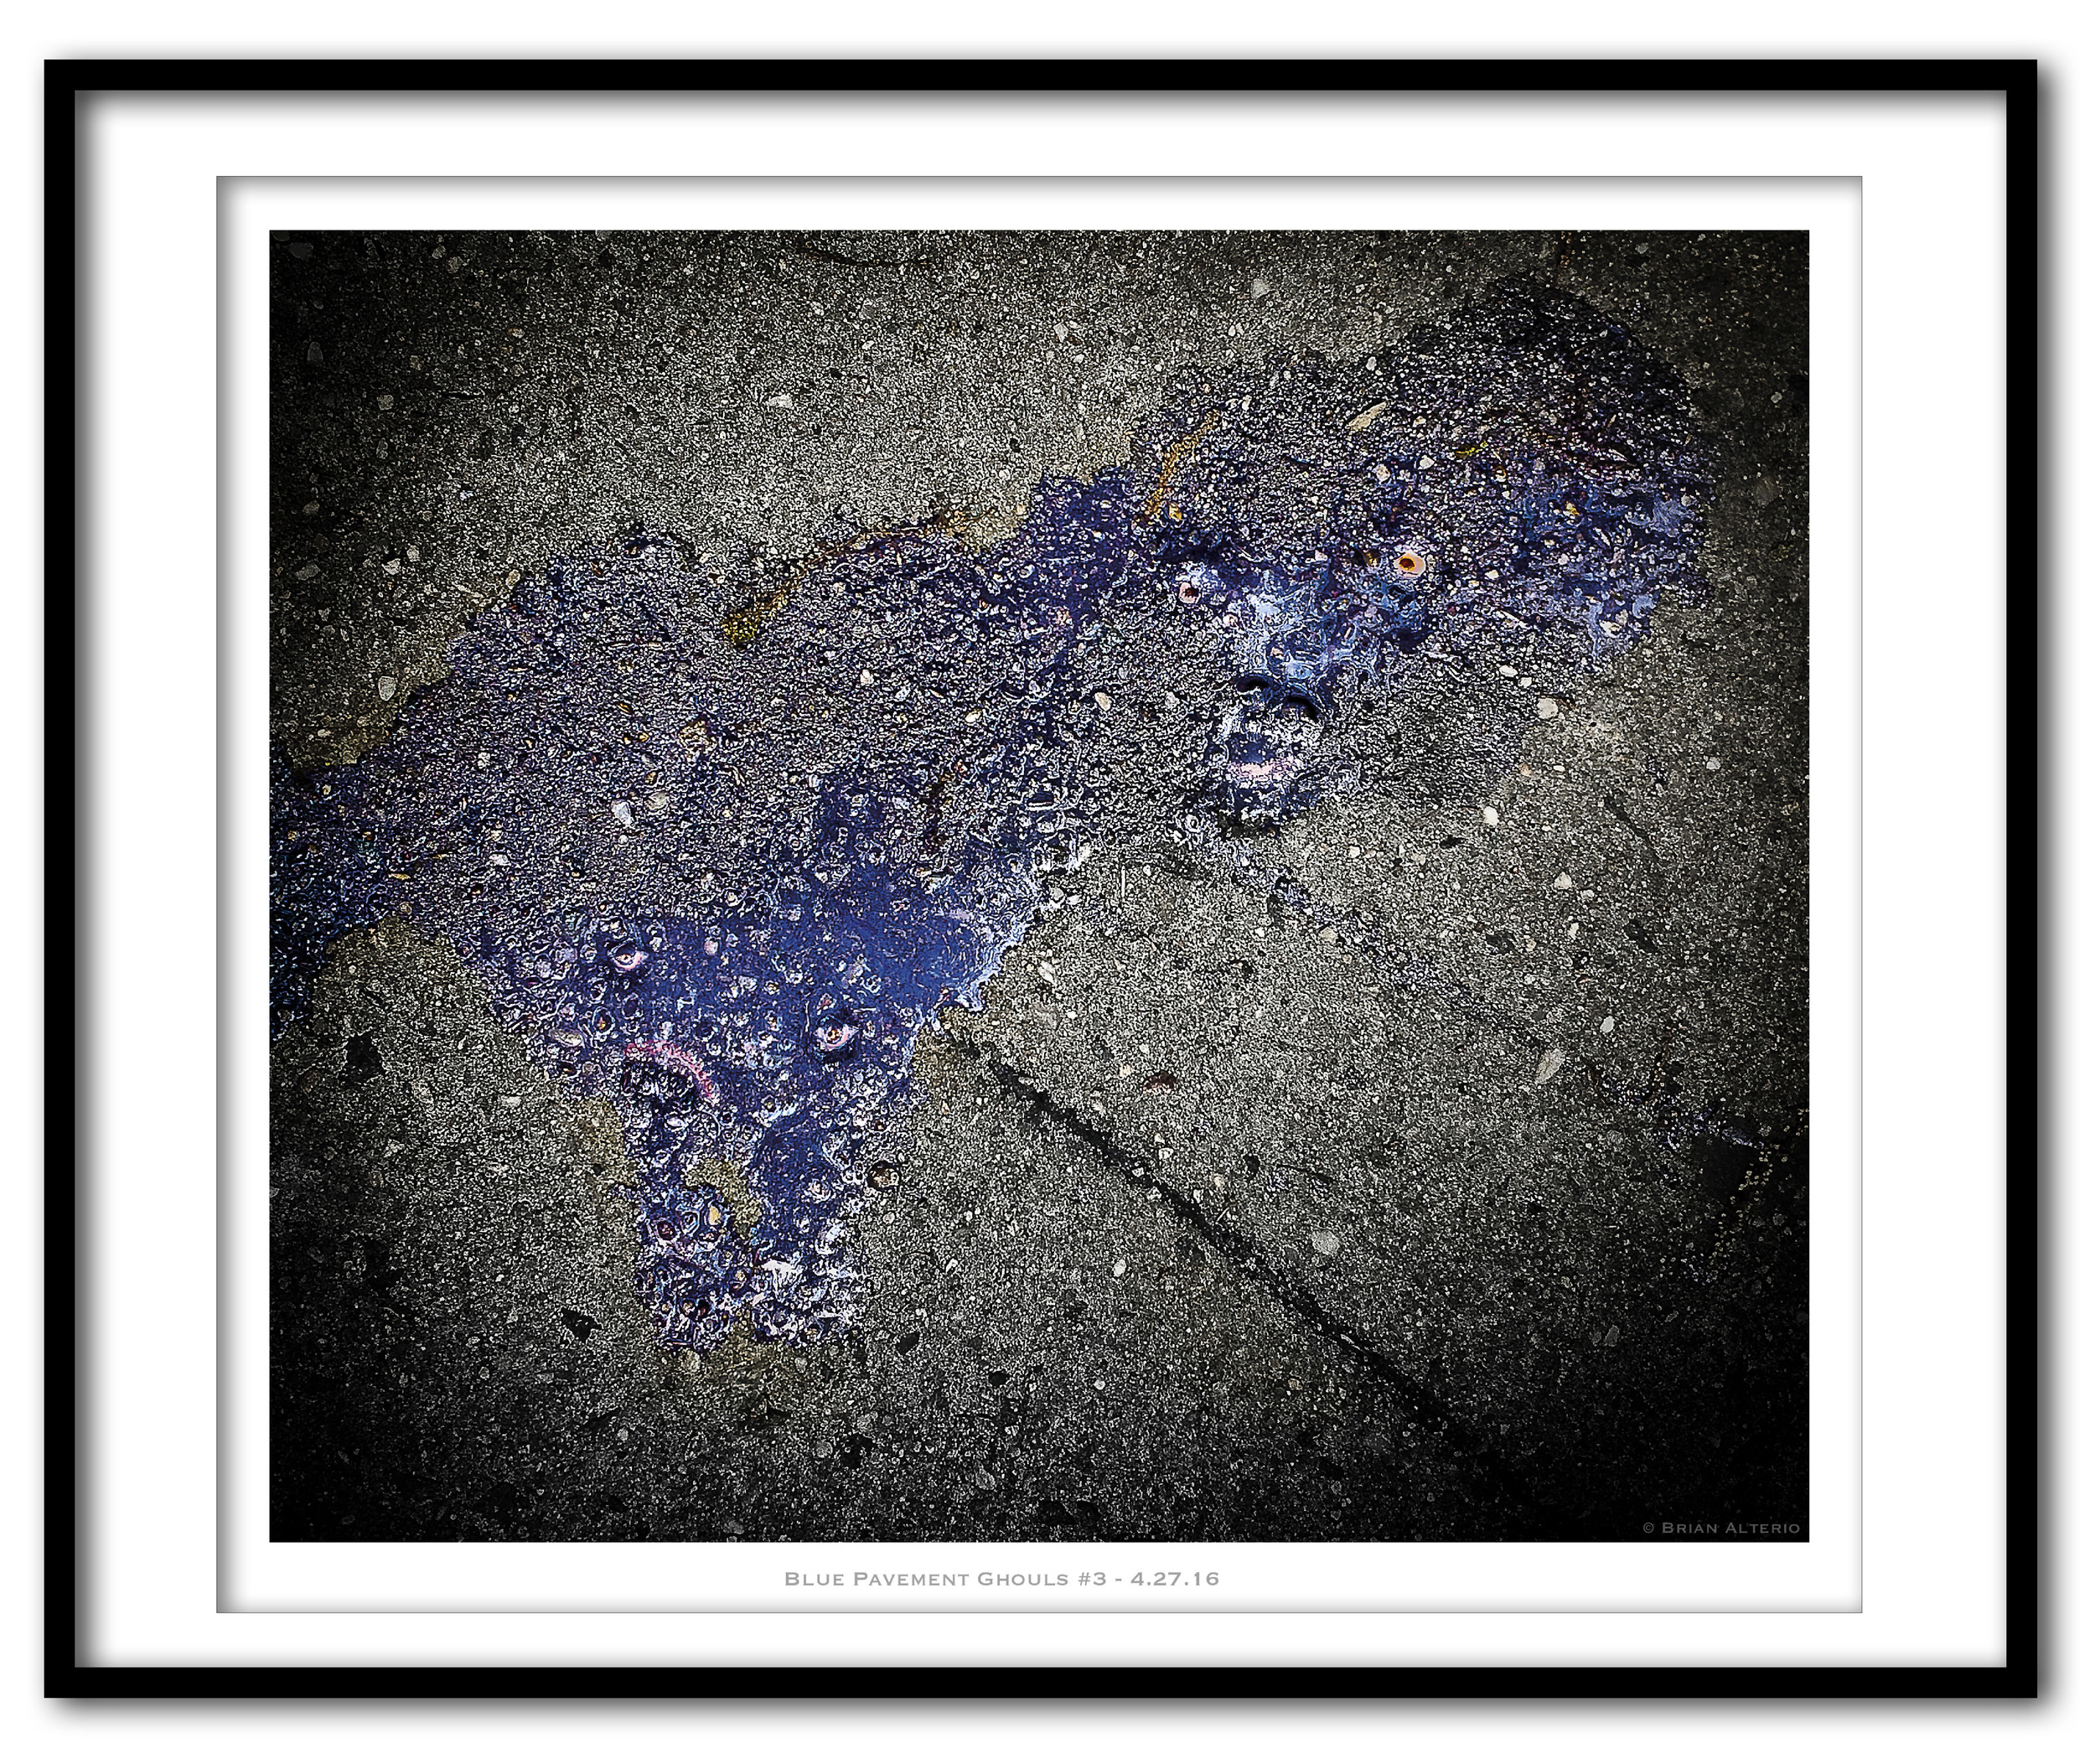 Blue Pavement Ghouls #3 - 4.27.16 - Framed.jpg